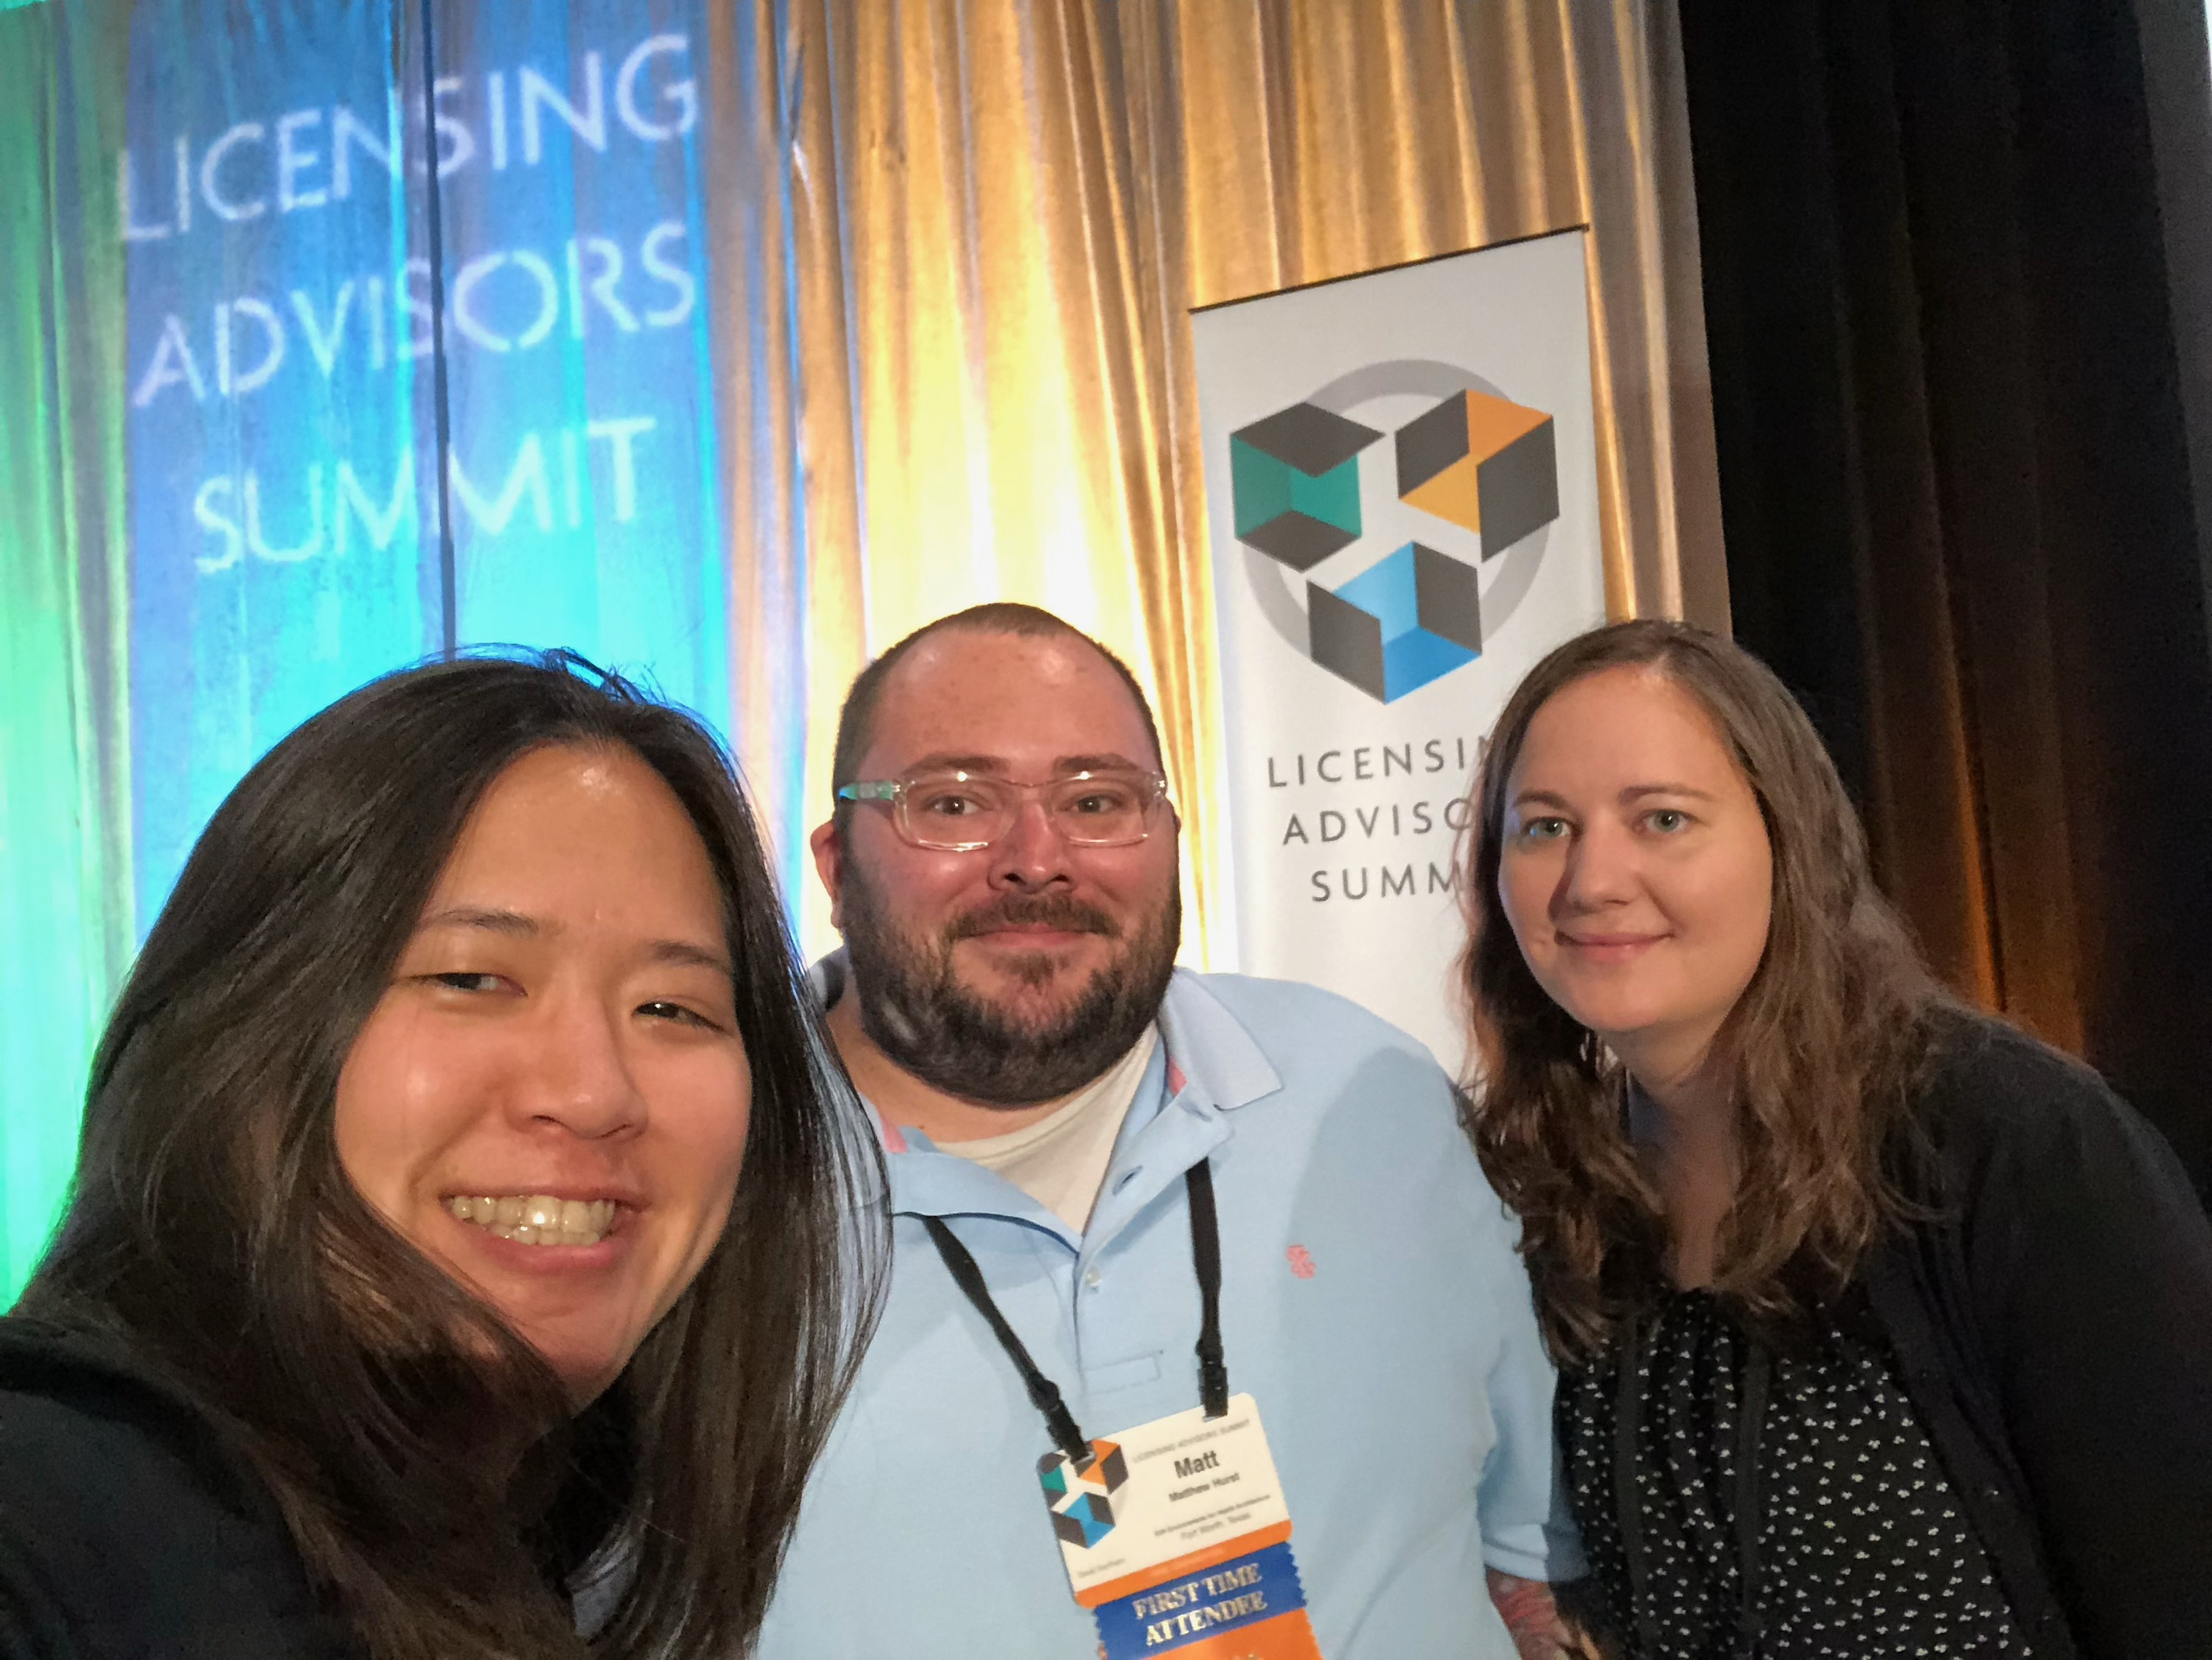 Three people smiling with stage curtain in background at the Licensing Advisors Summit in Minnesota.